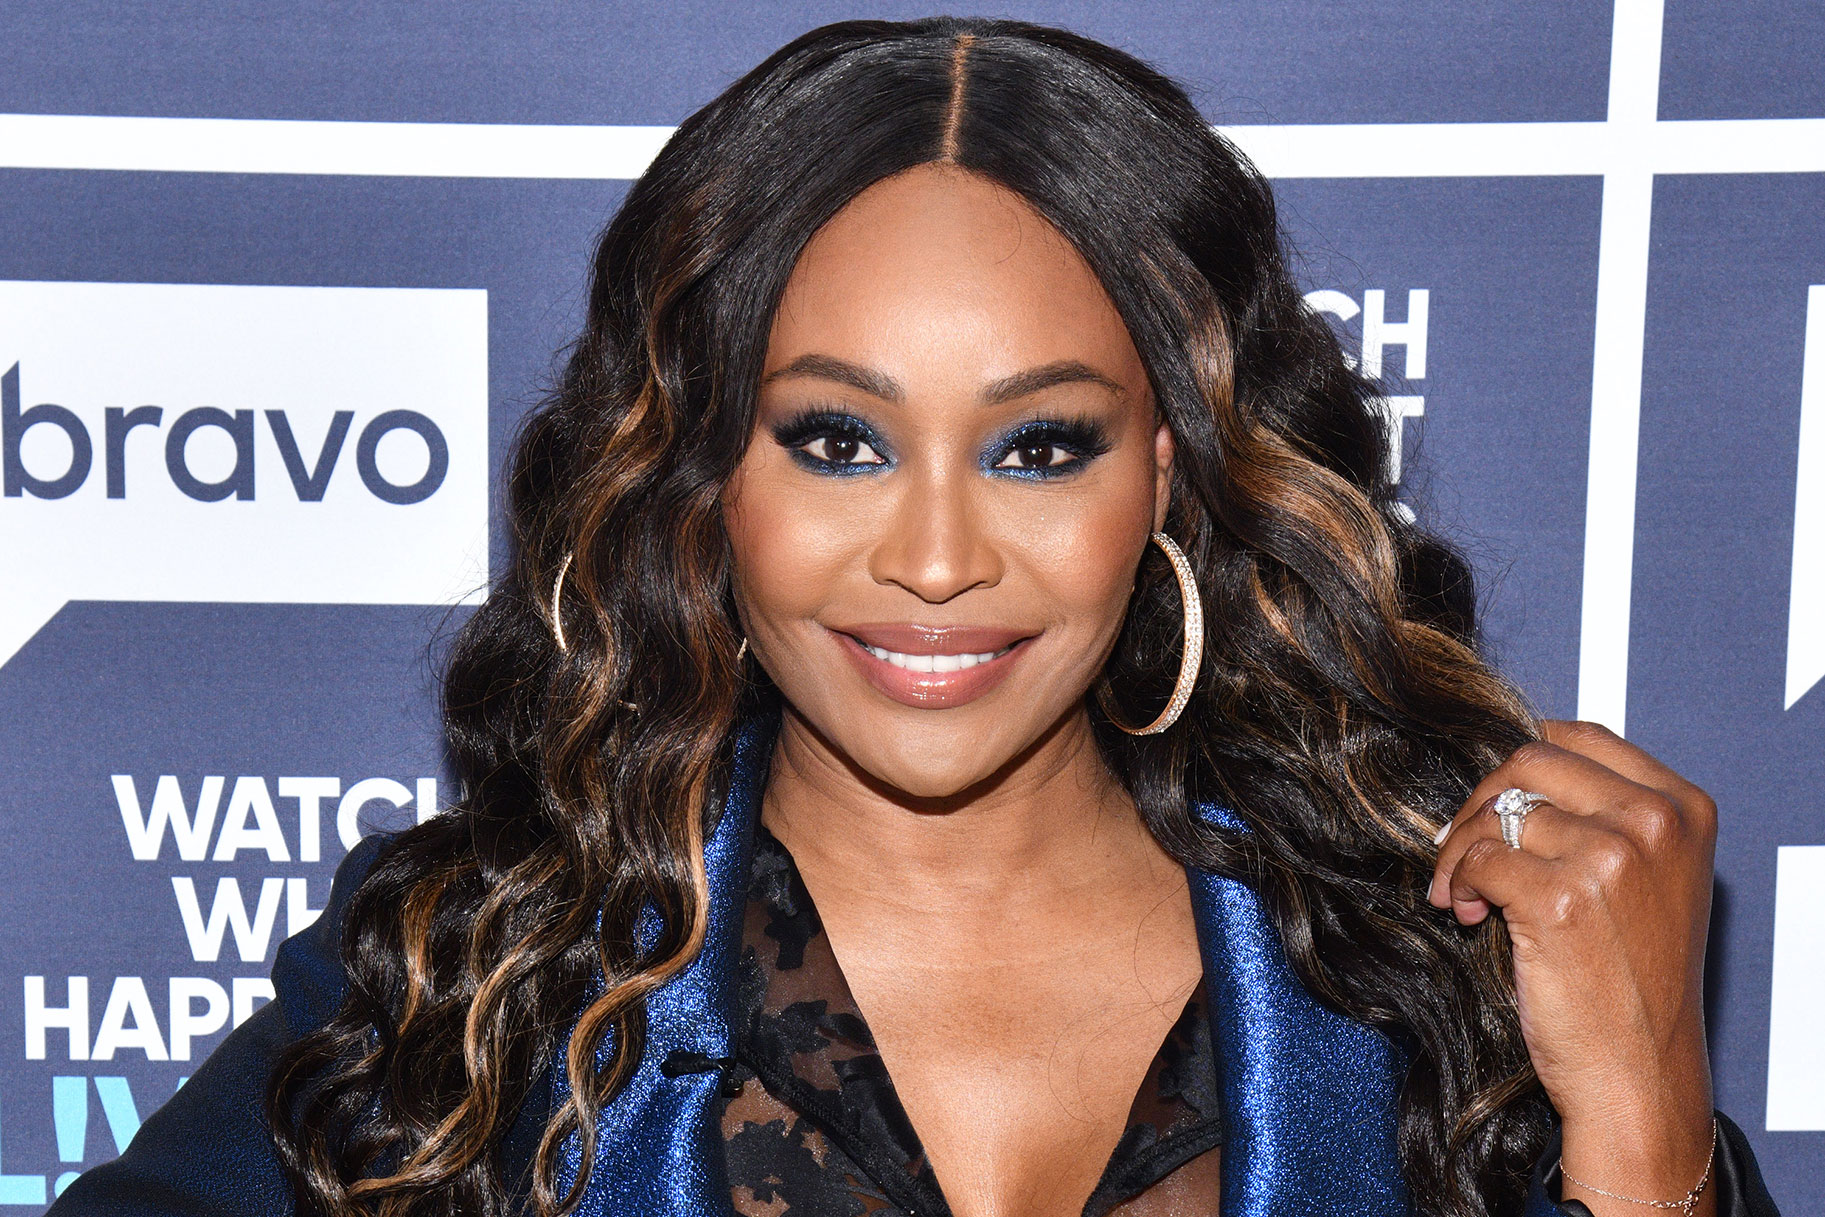 Cynthia Bailey Shares A Photo With A Powerful Message - See It Here